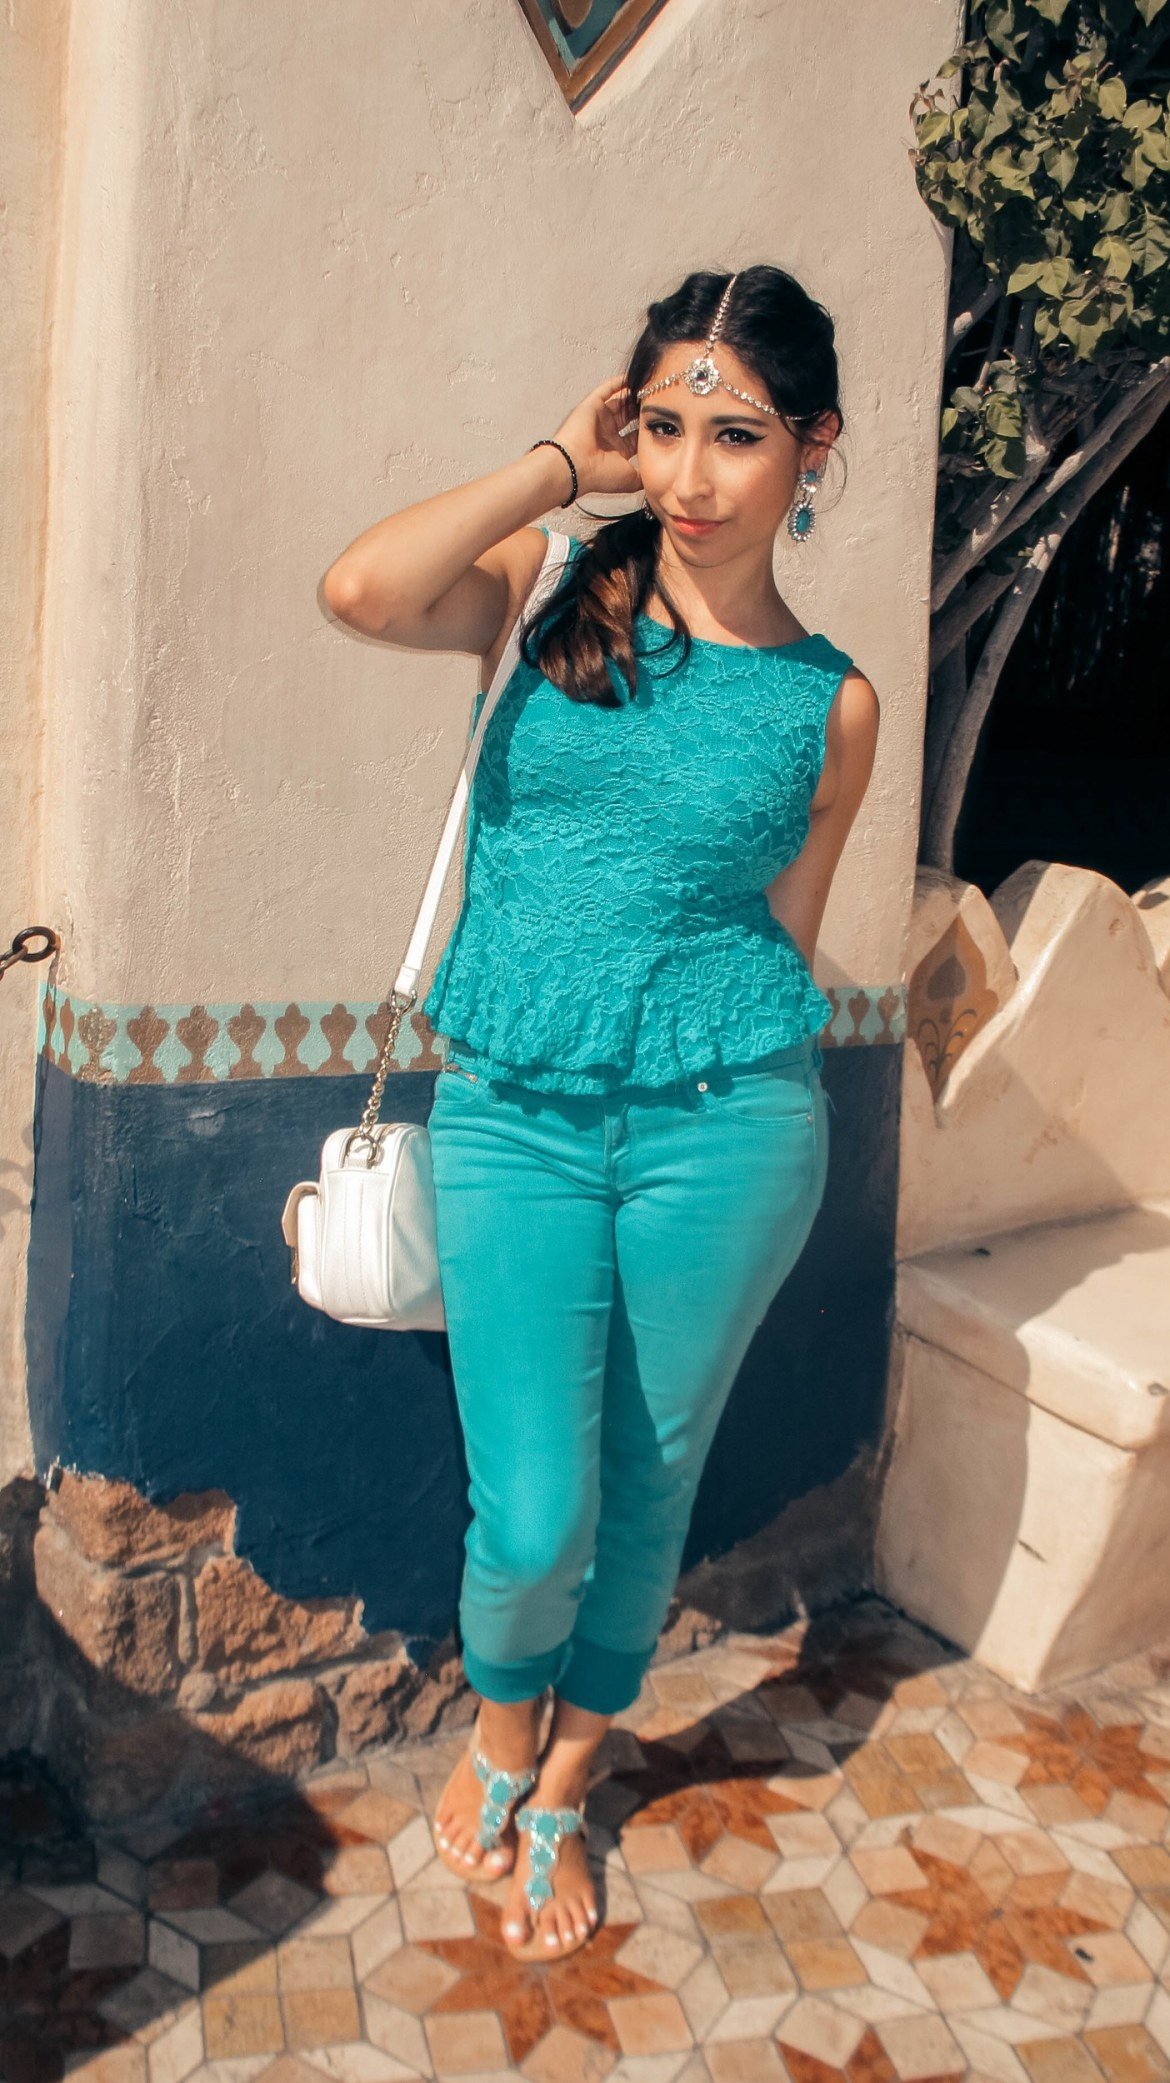 Woman dressed in teal outfit